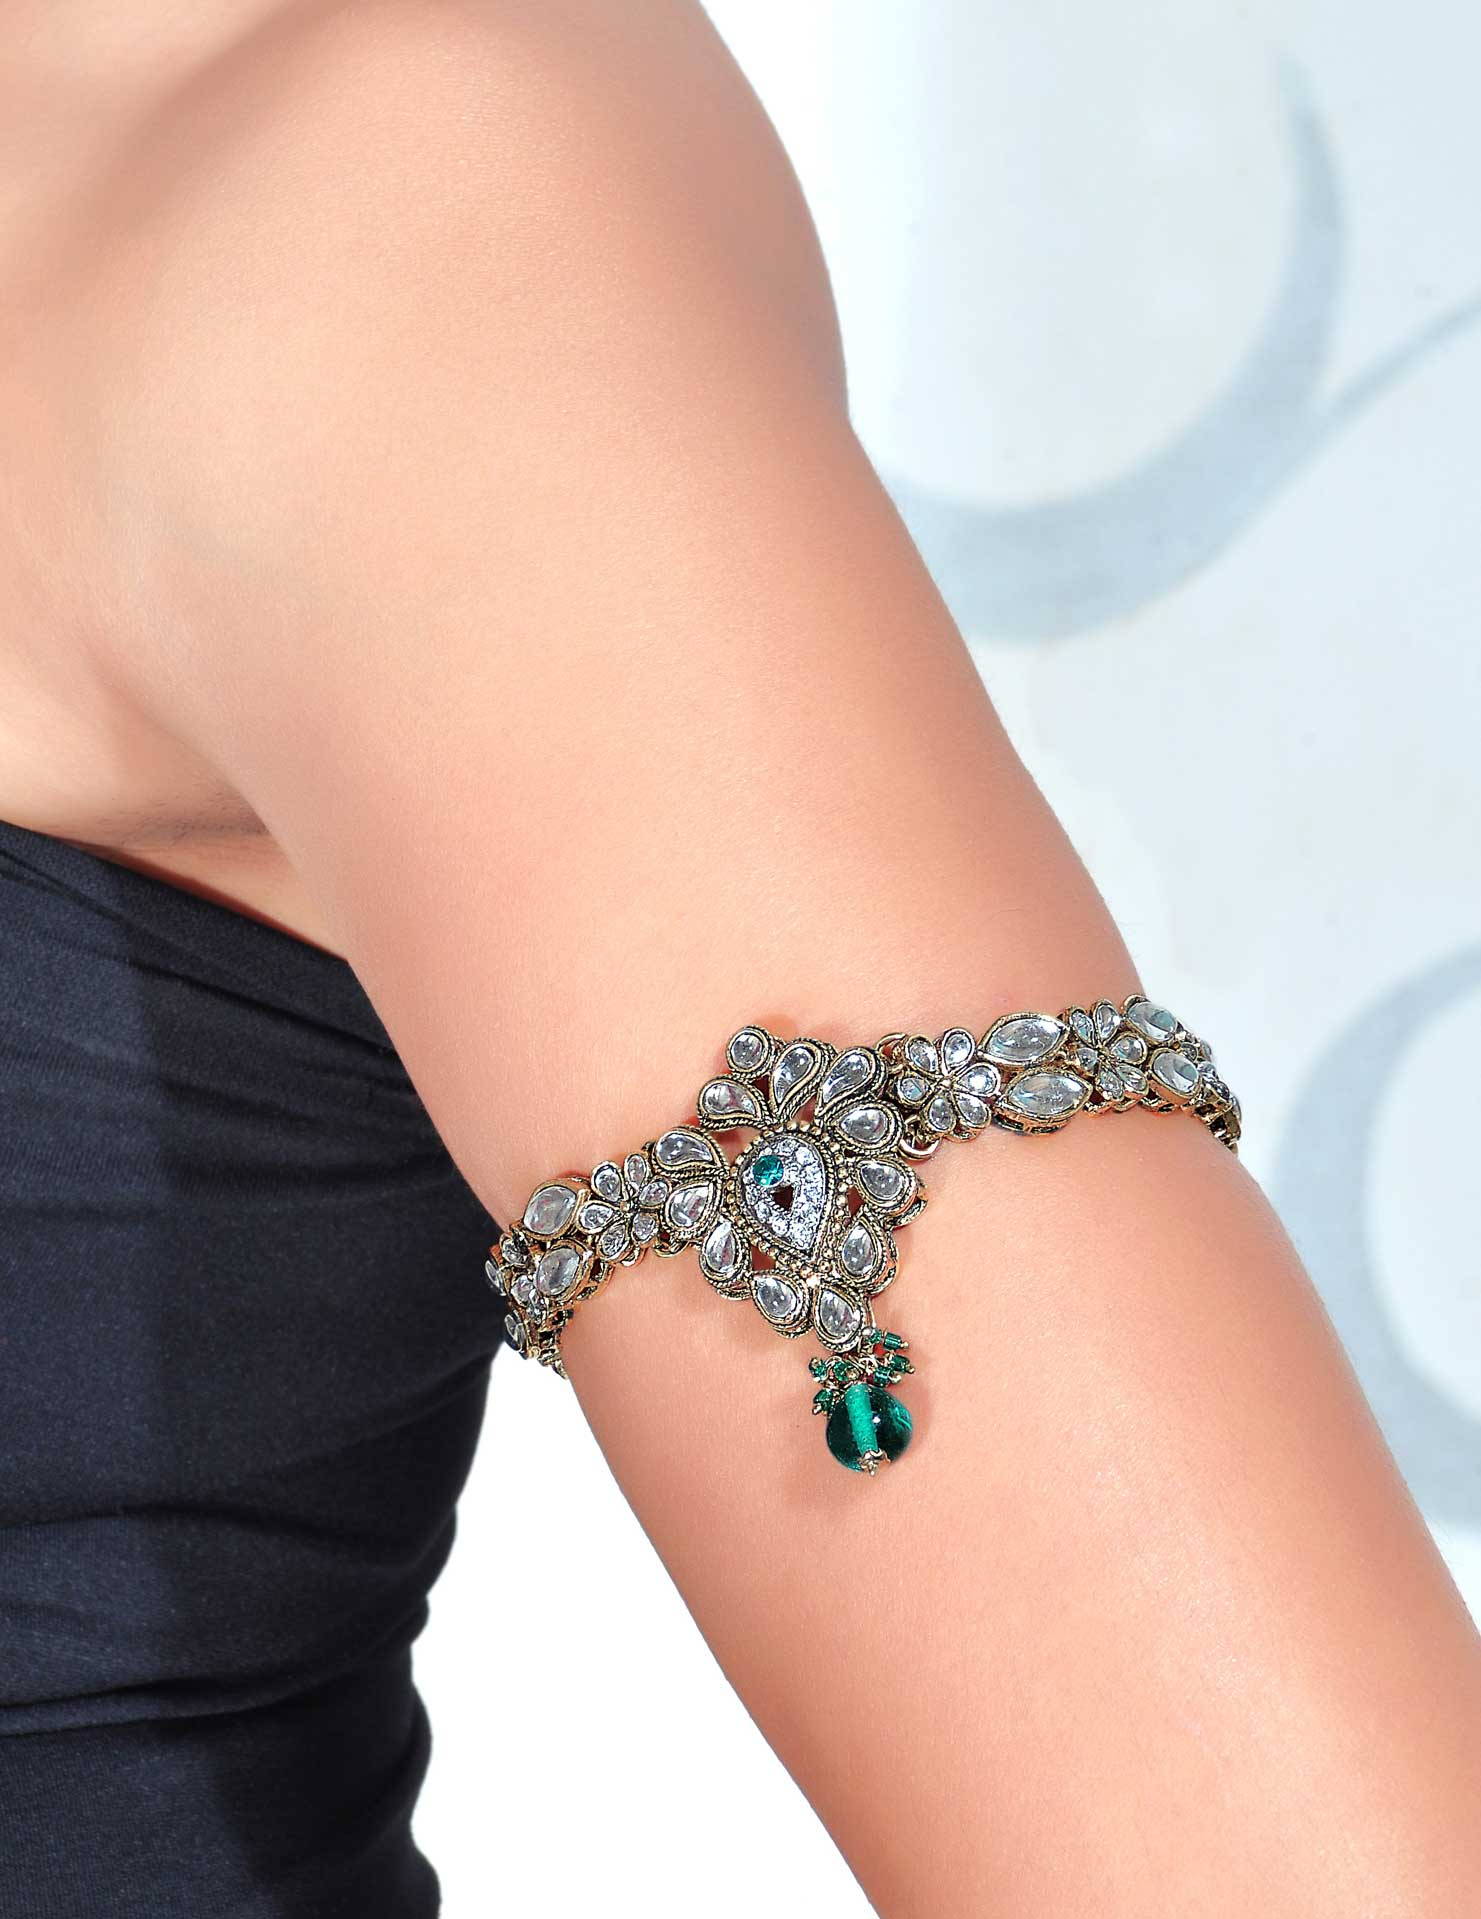 Stunning rama arm band with kundan design and antique finish